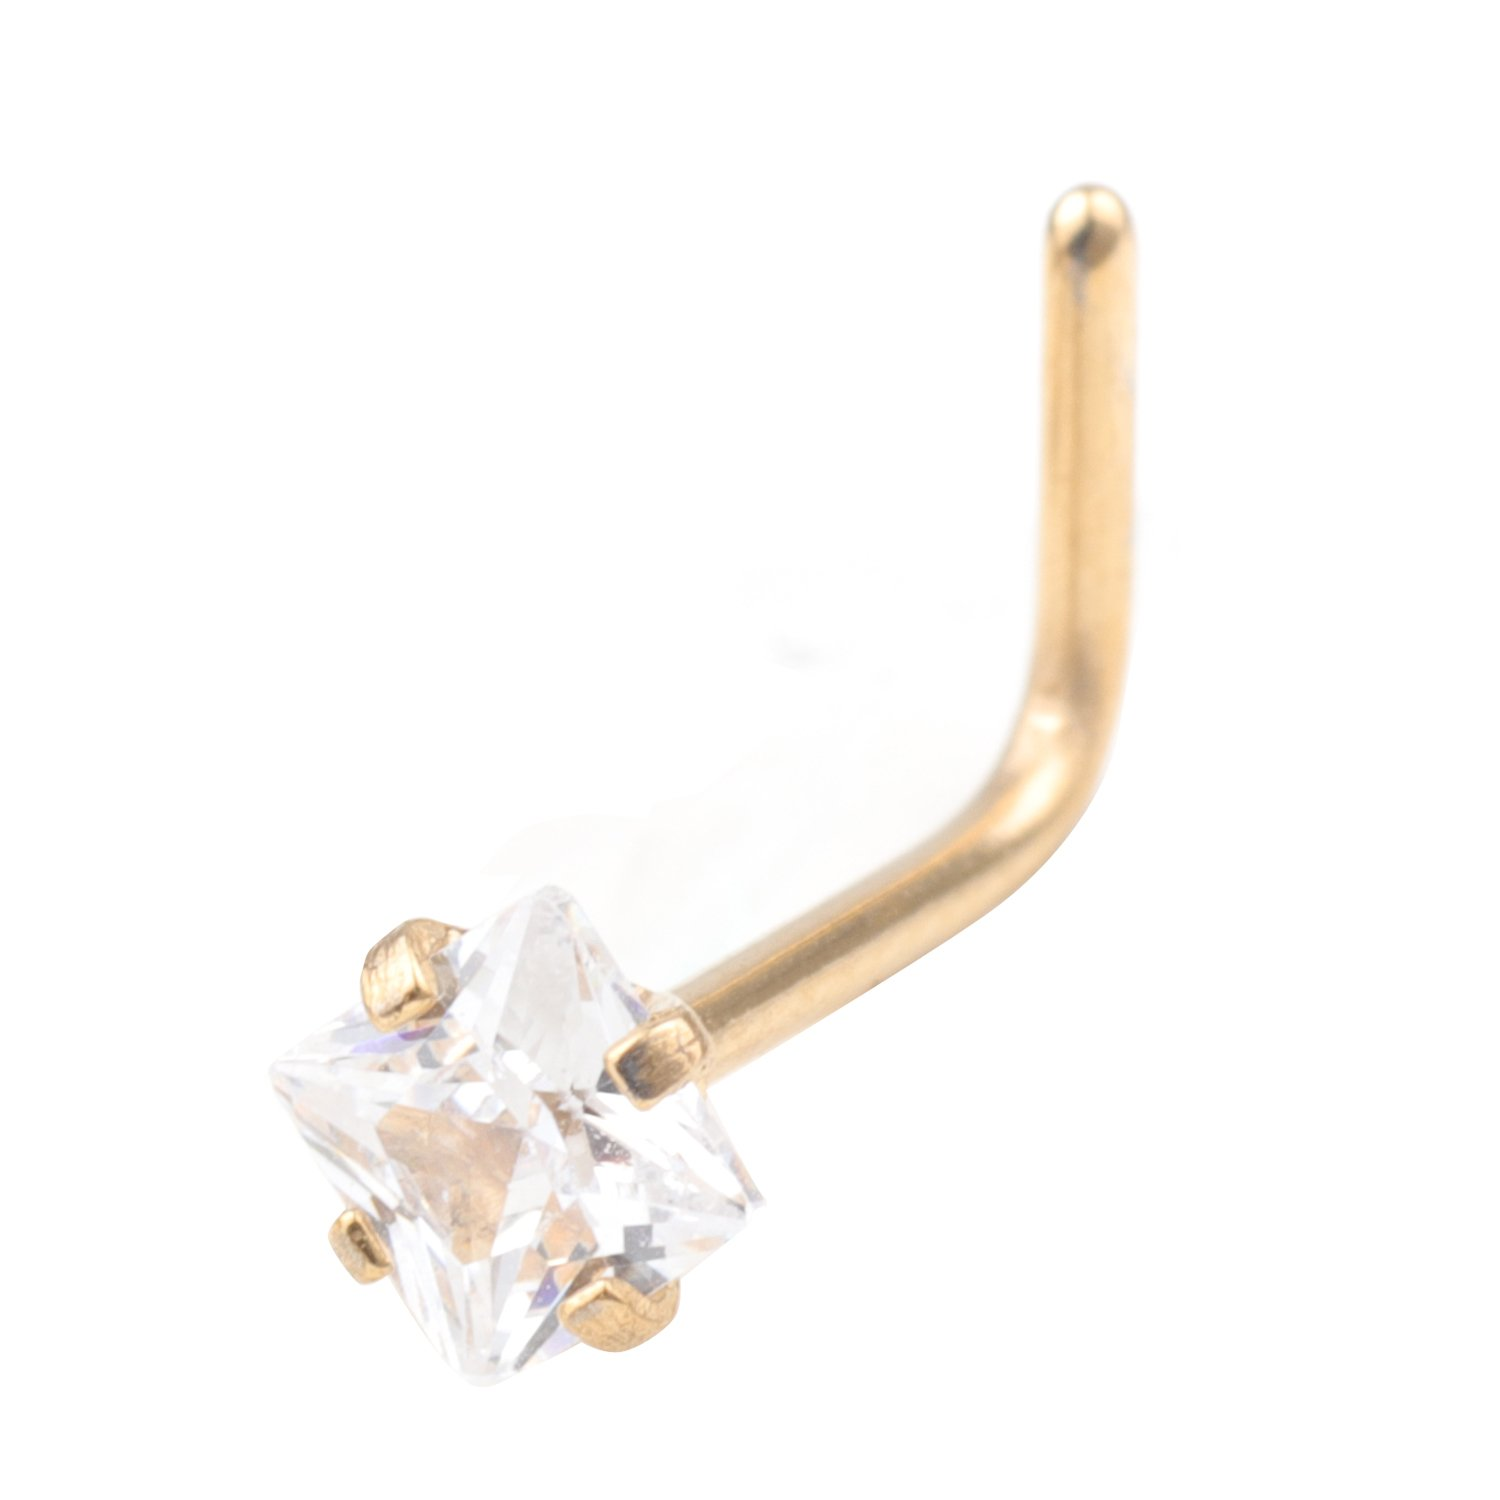 20G Stainless Steel 3mm Clear Square Cubic Zirconia Crystal Nose L-Shape Nose Ring Nose hoop Body Jewelry Piercing